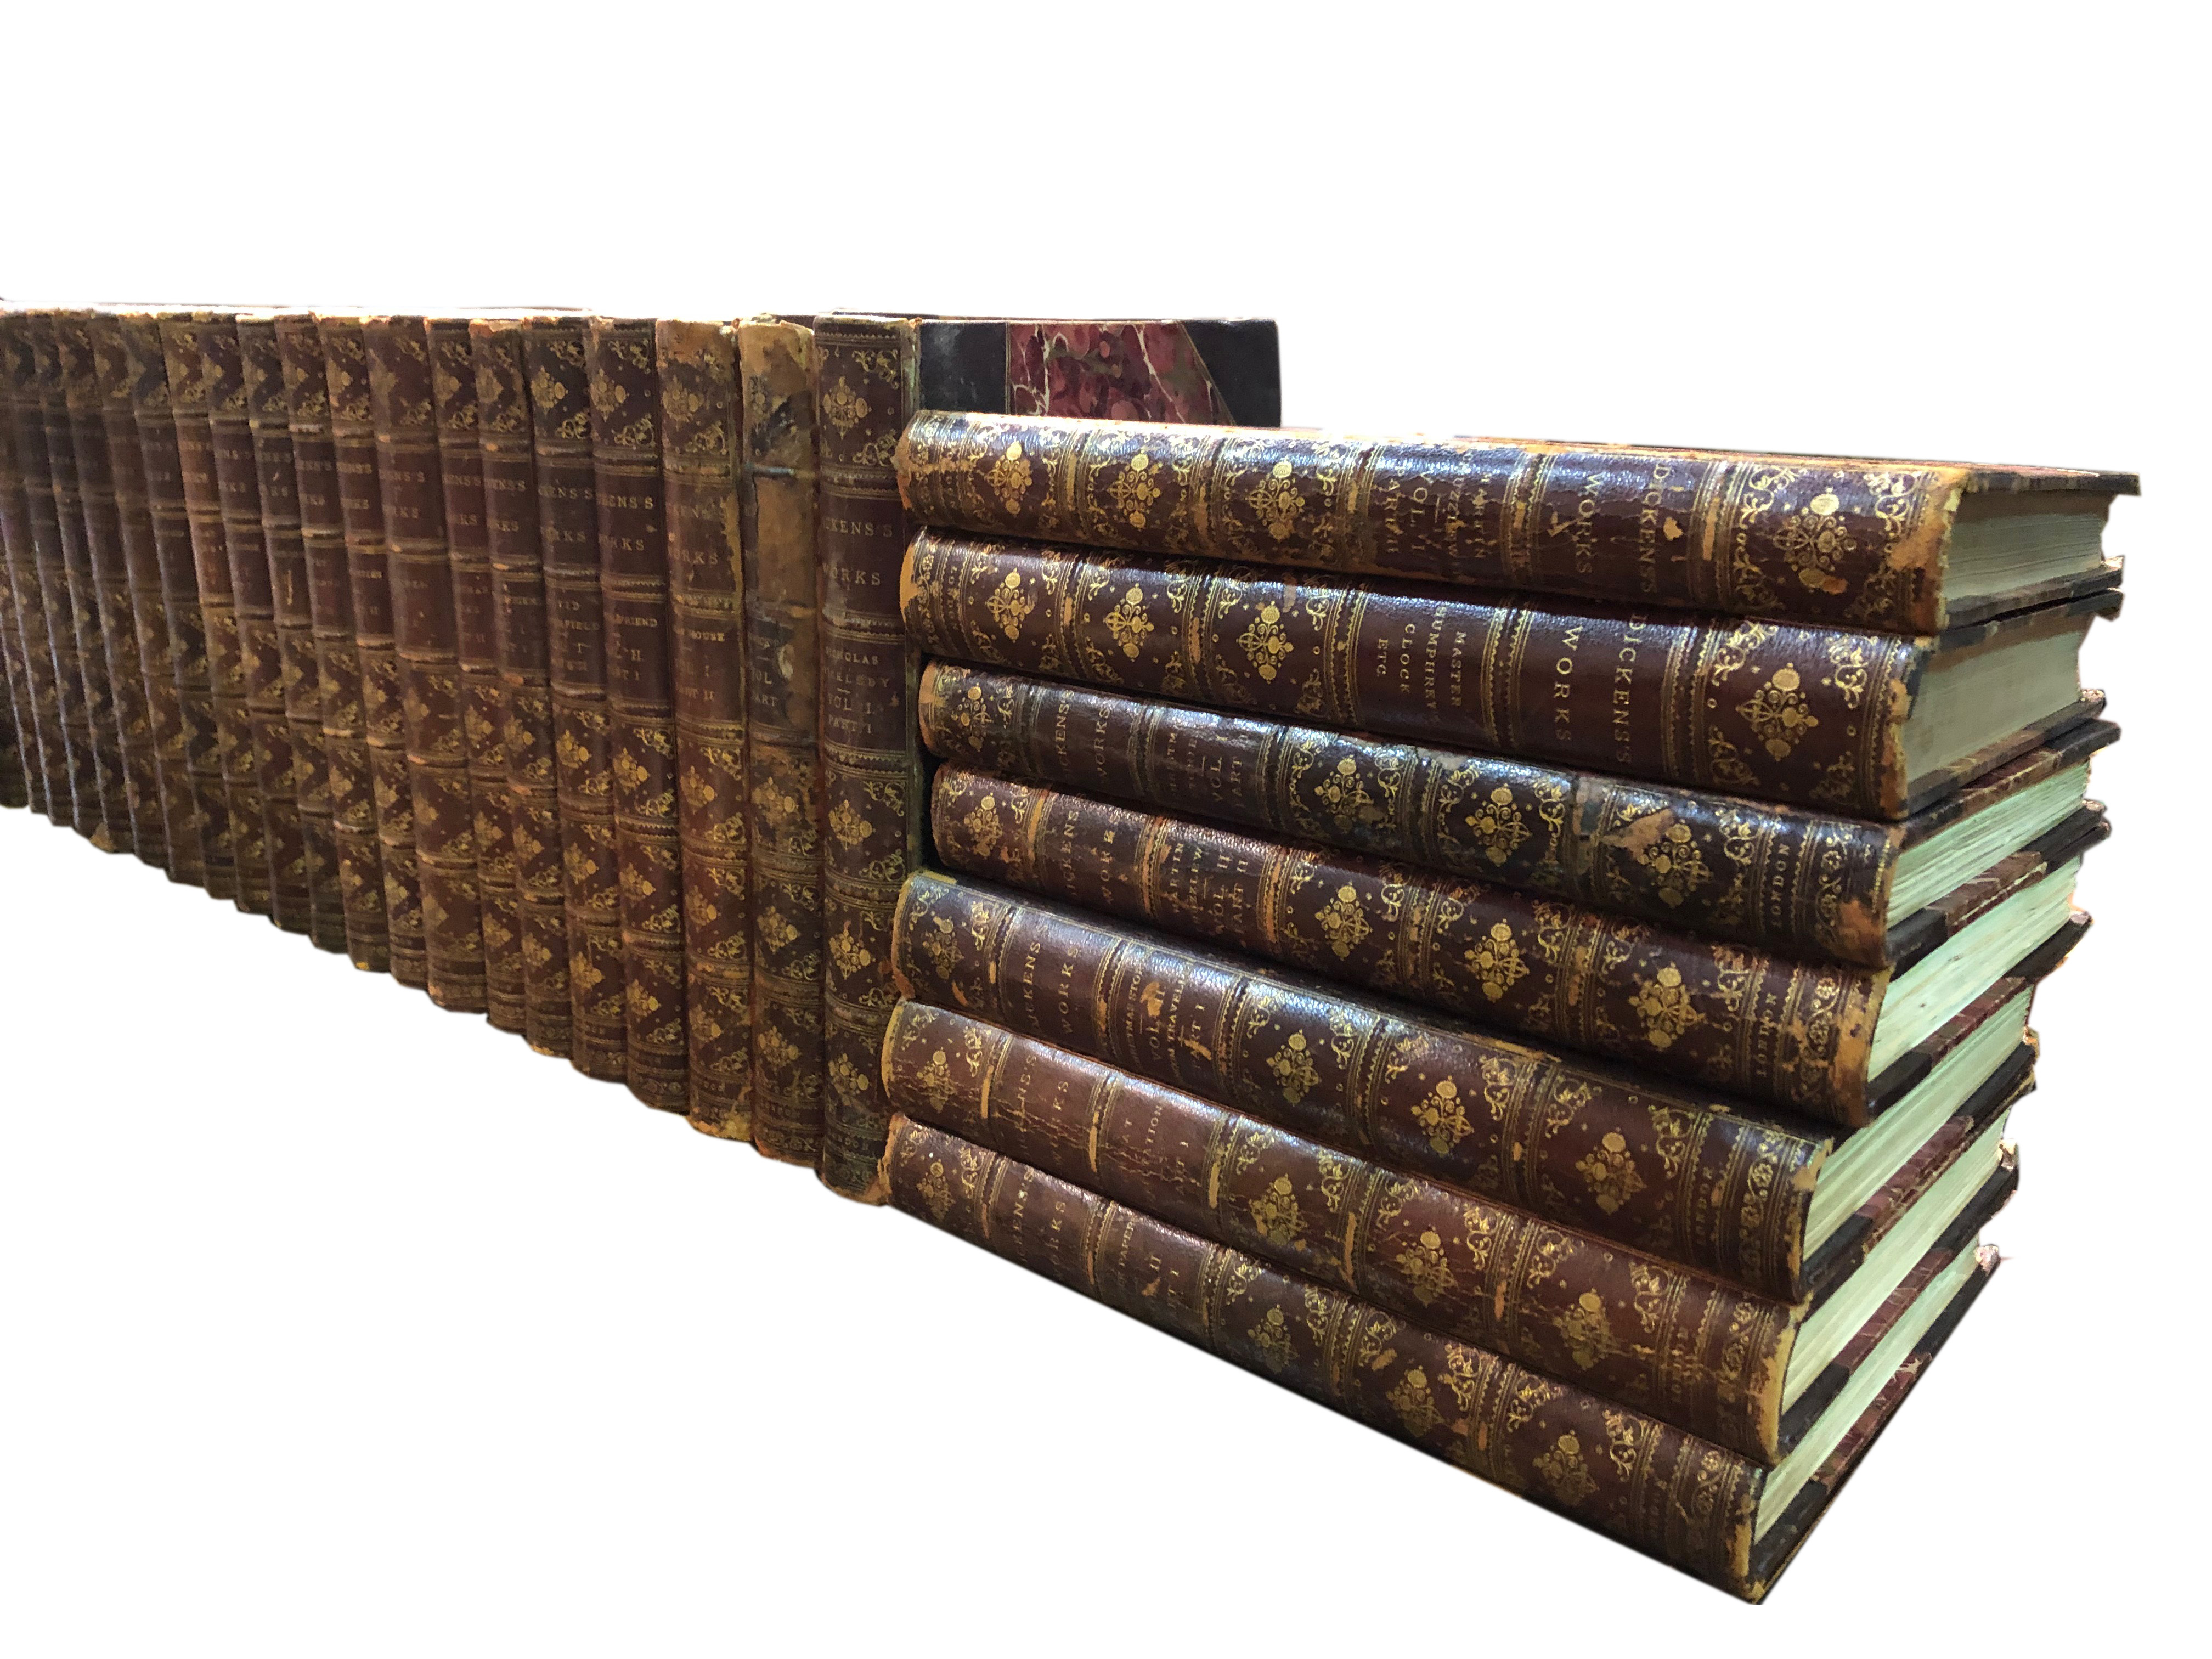 A 19th Century Collection of 60 Illustrated Volumes of Charles Dickens' Works no. 4785